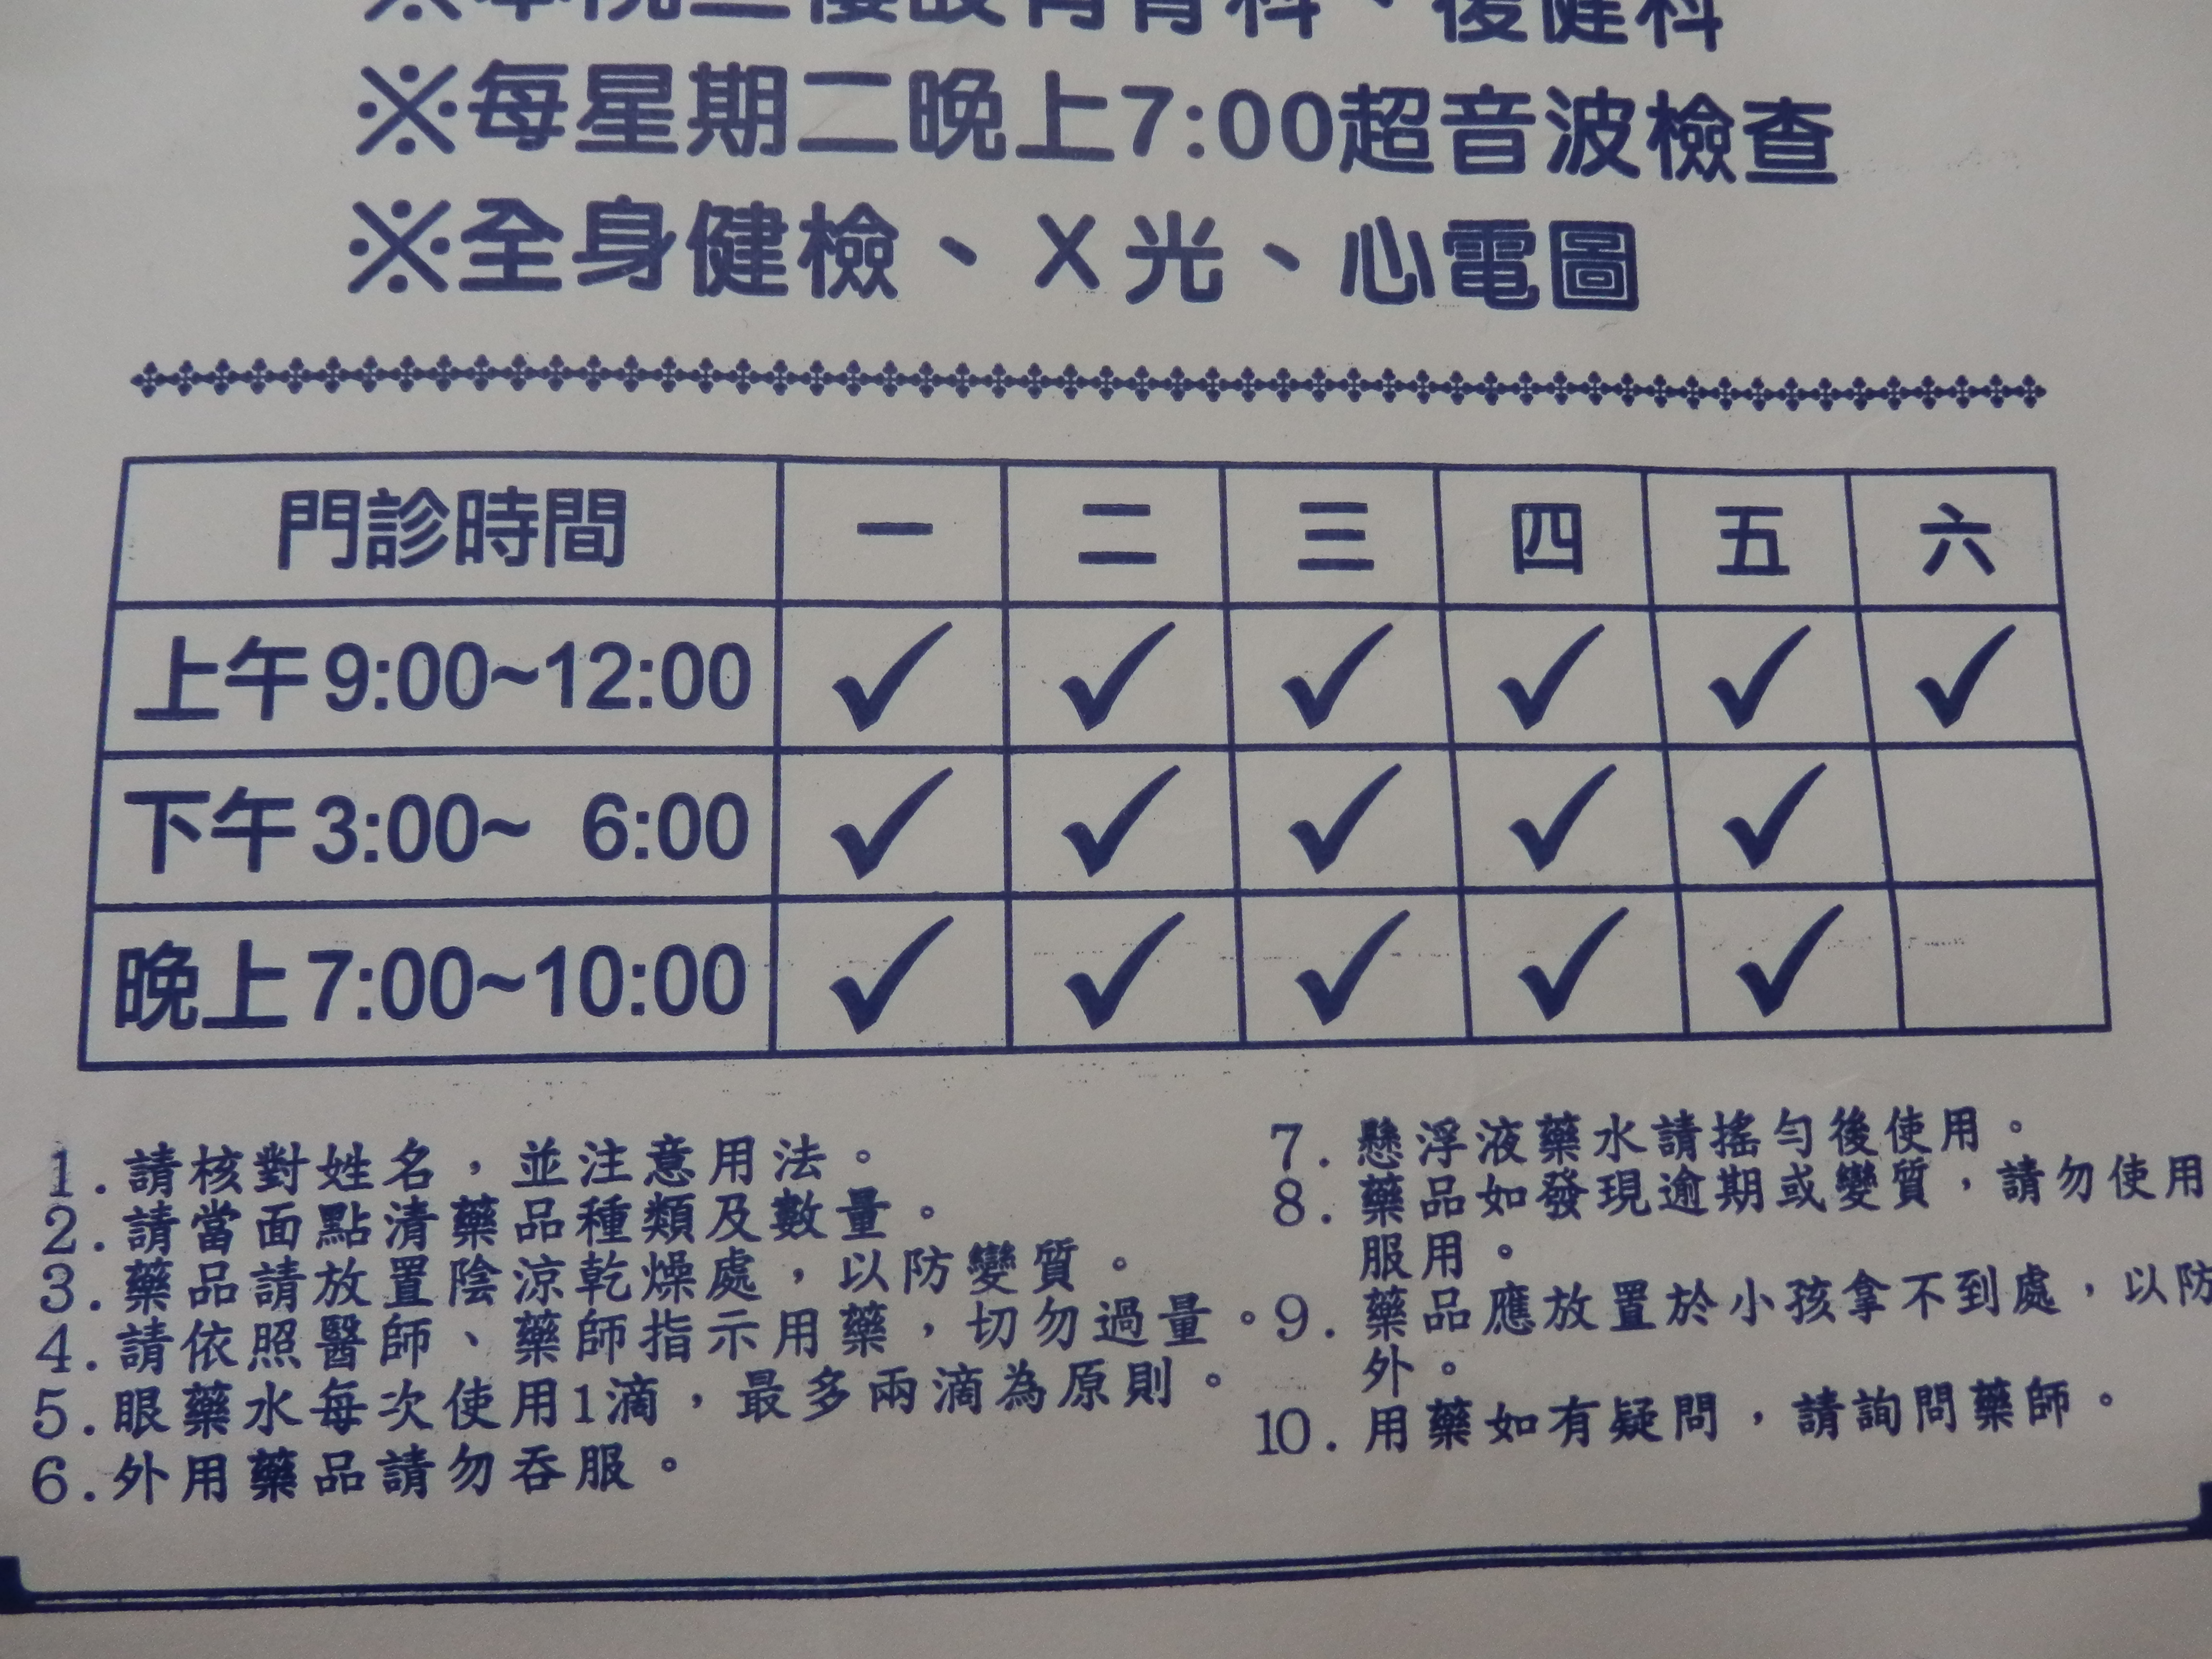 Clinic opening hours